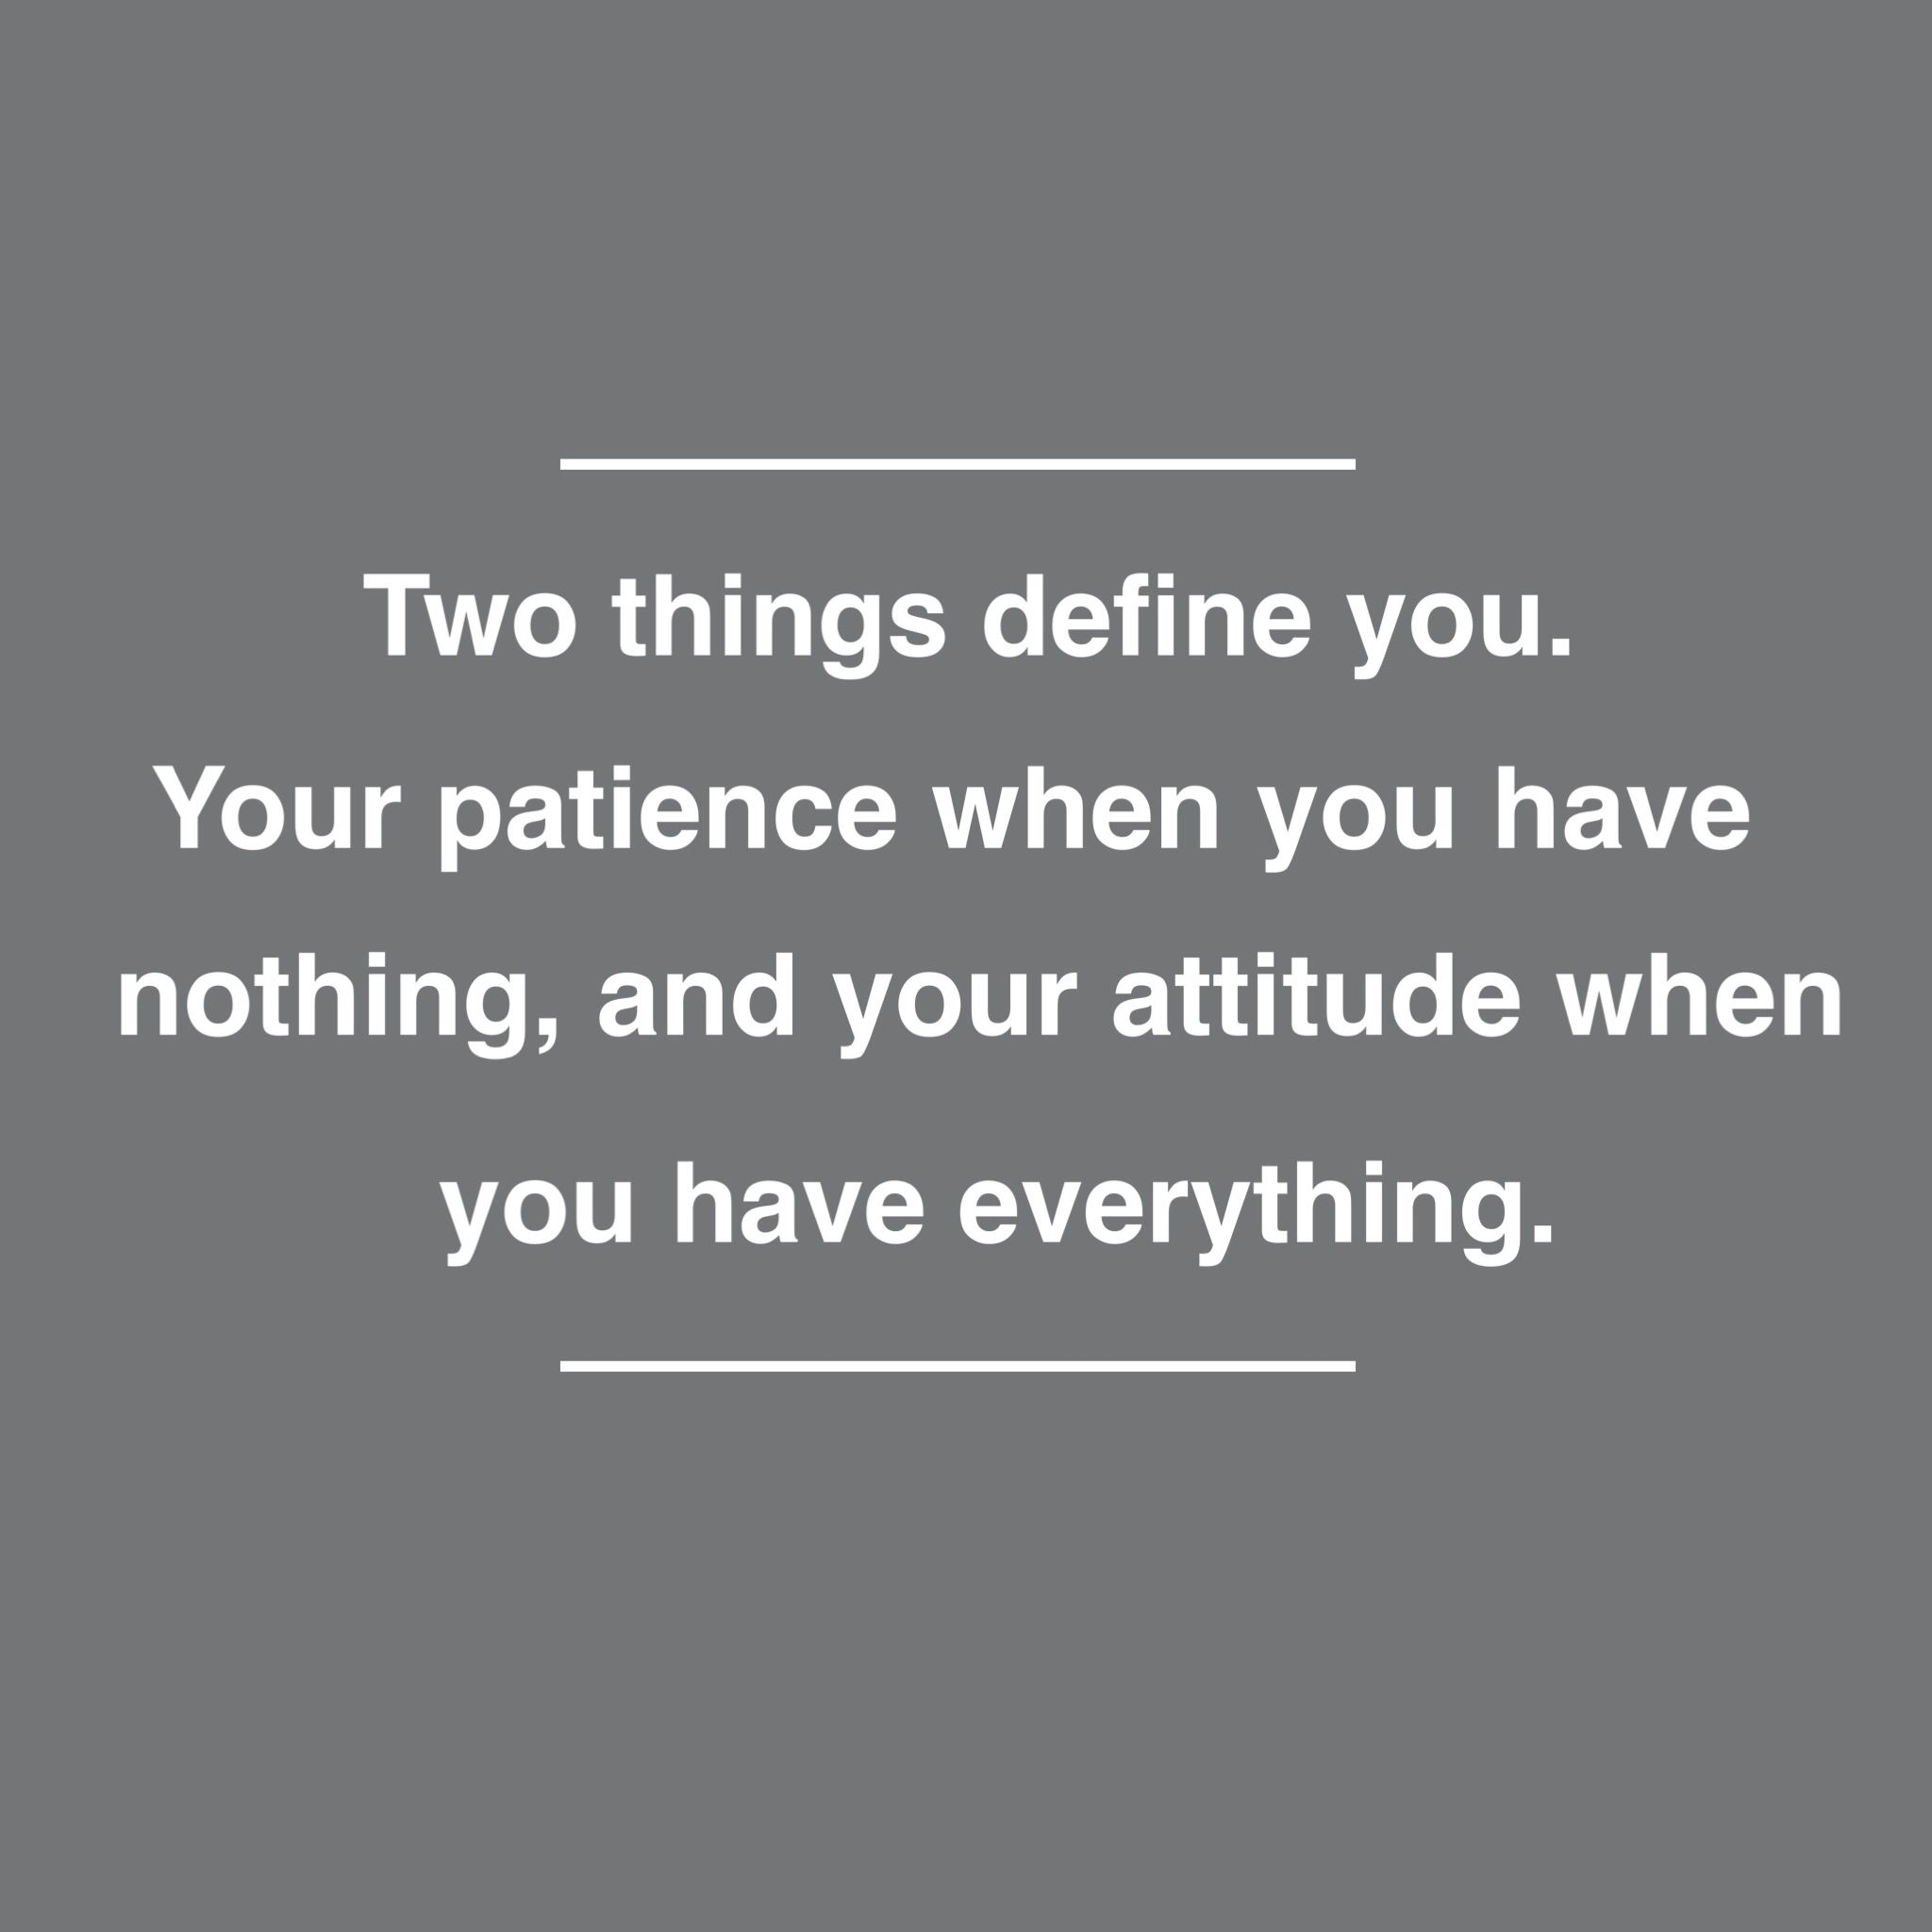 Philosophy Quotes Best Two Things Define You Patience When You Have Nothing Attitude When